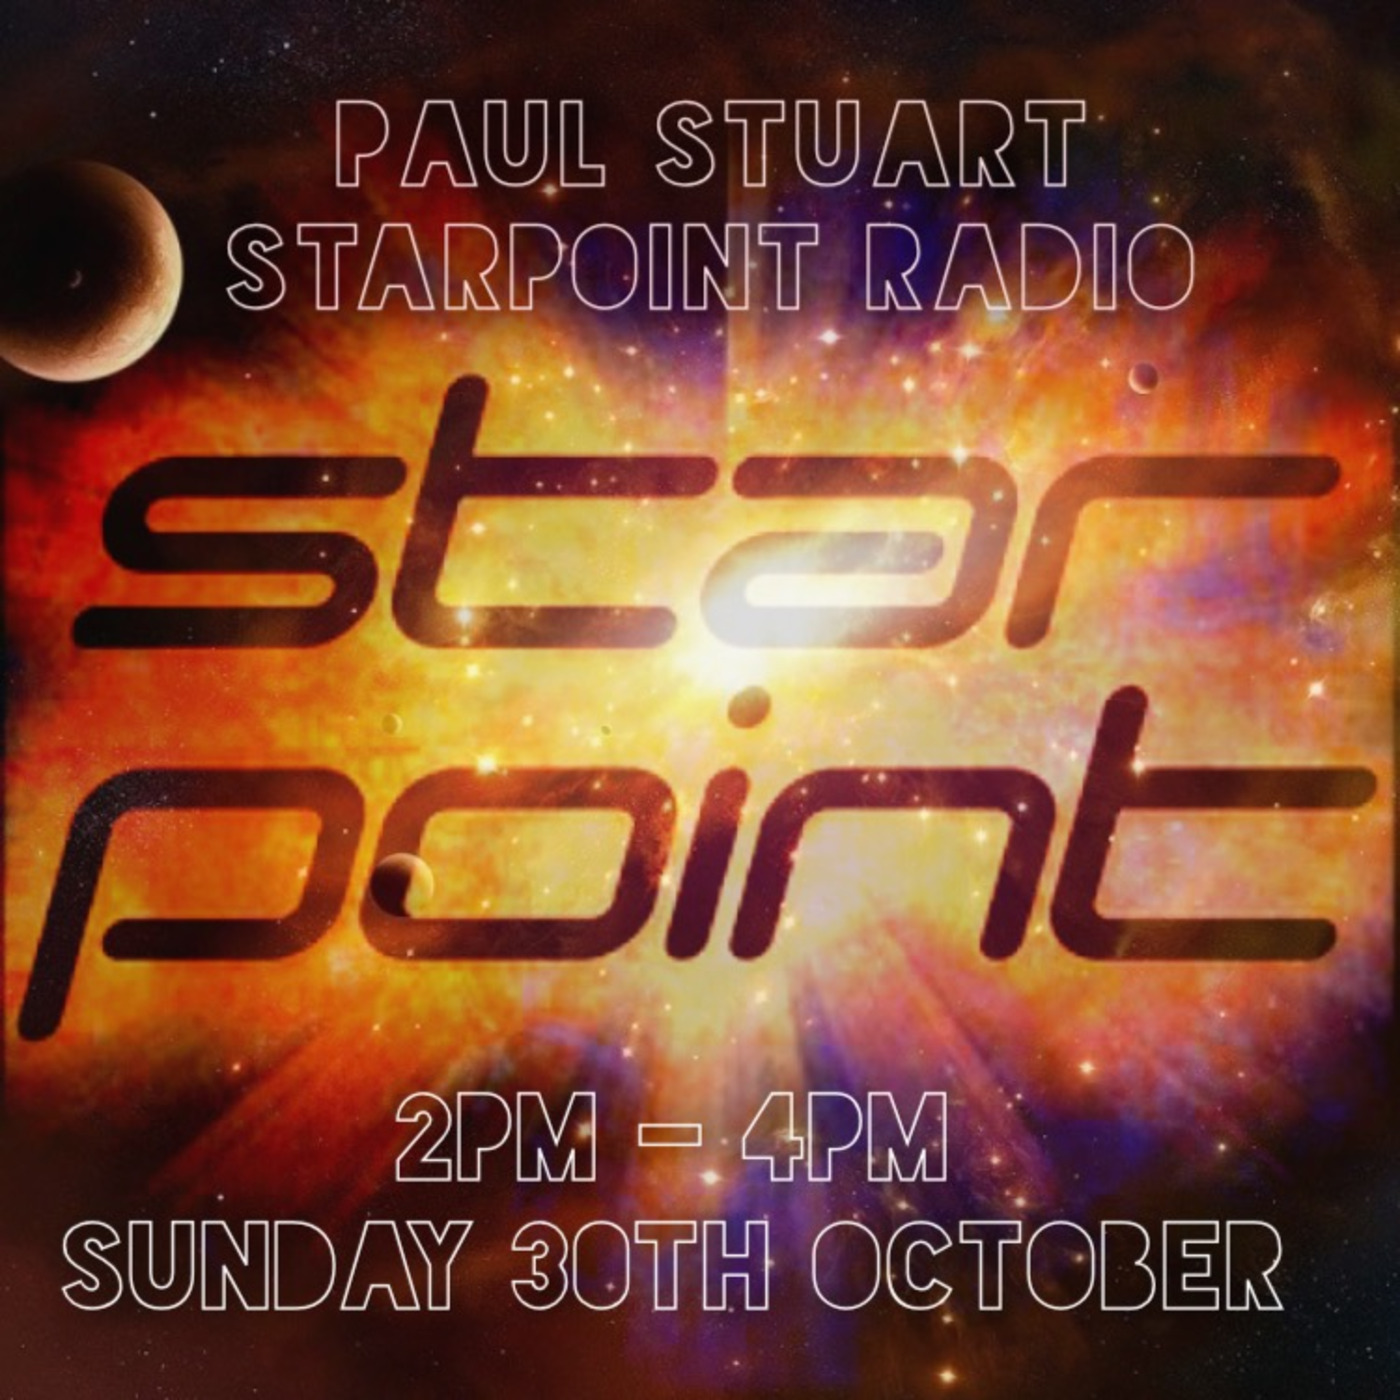 paul stuart starpoint radio 2 4pm on sunday 30th from sunday 30th new music from kim tibbs rhemi lindsey webster myles sanko gwendolyn collins and fuminori kagajo ft sheree hicks as well